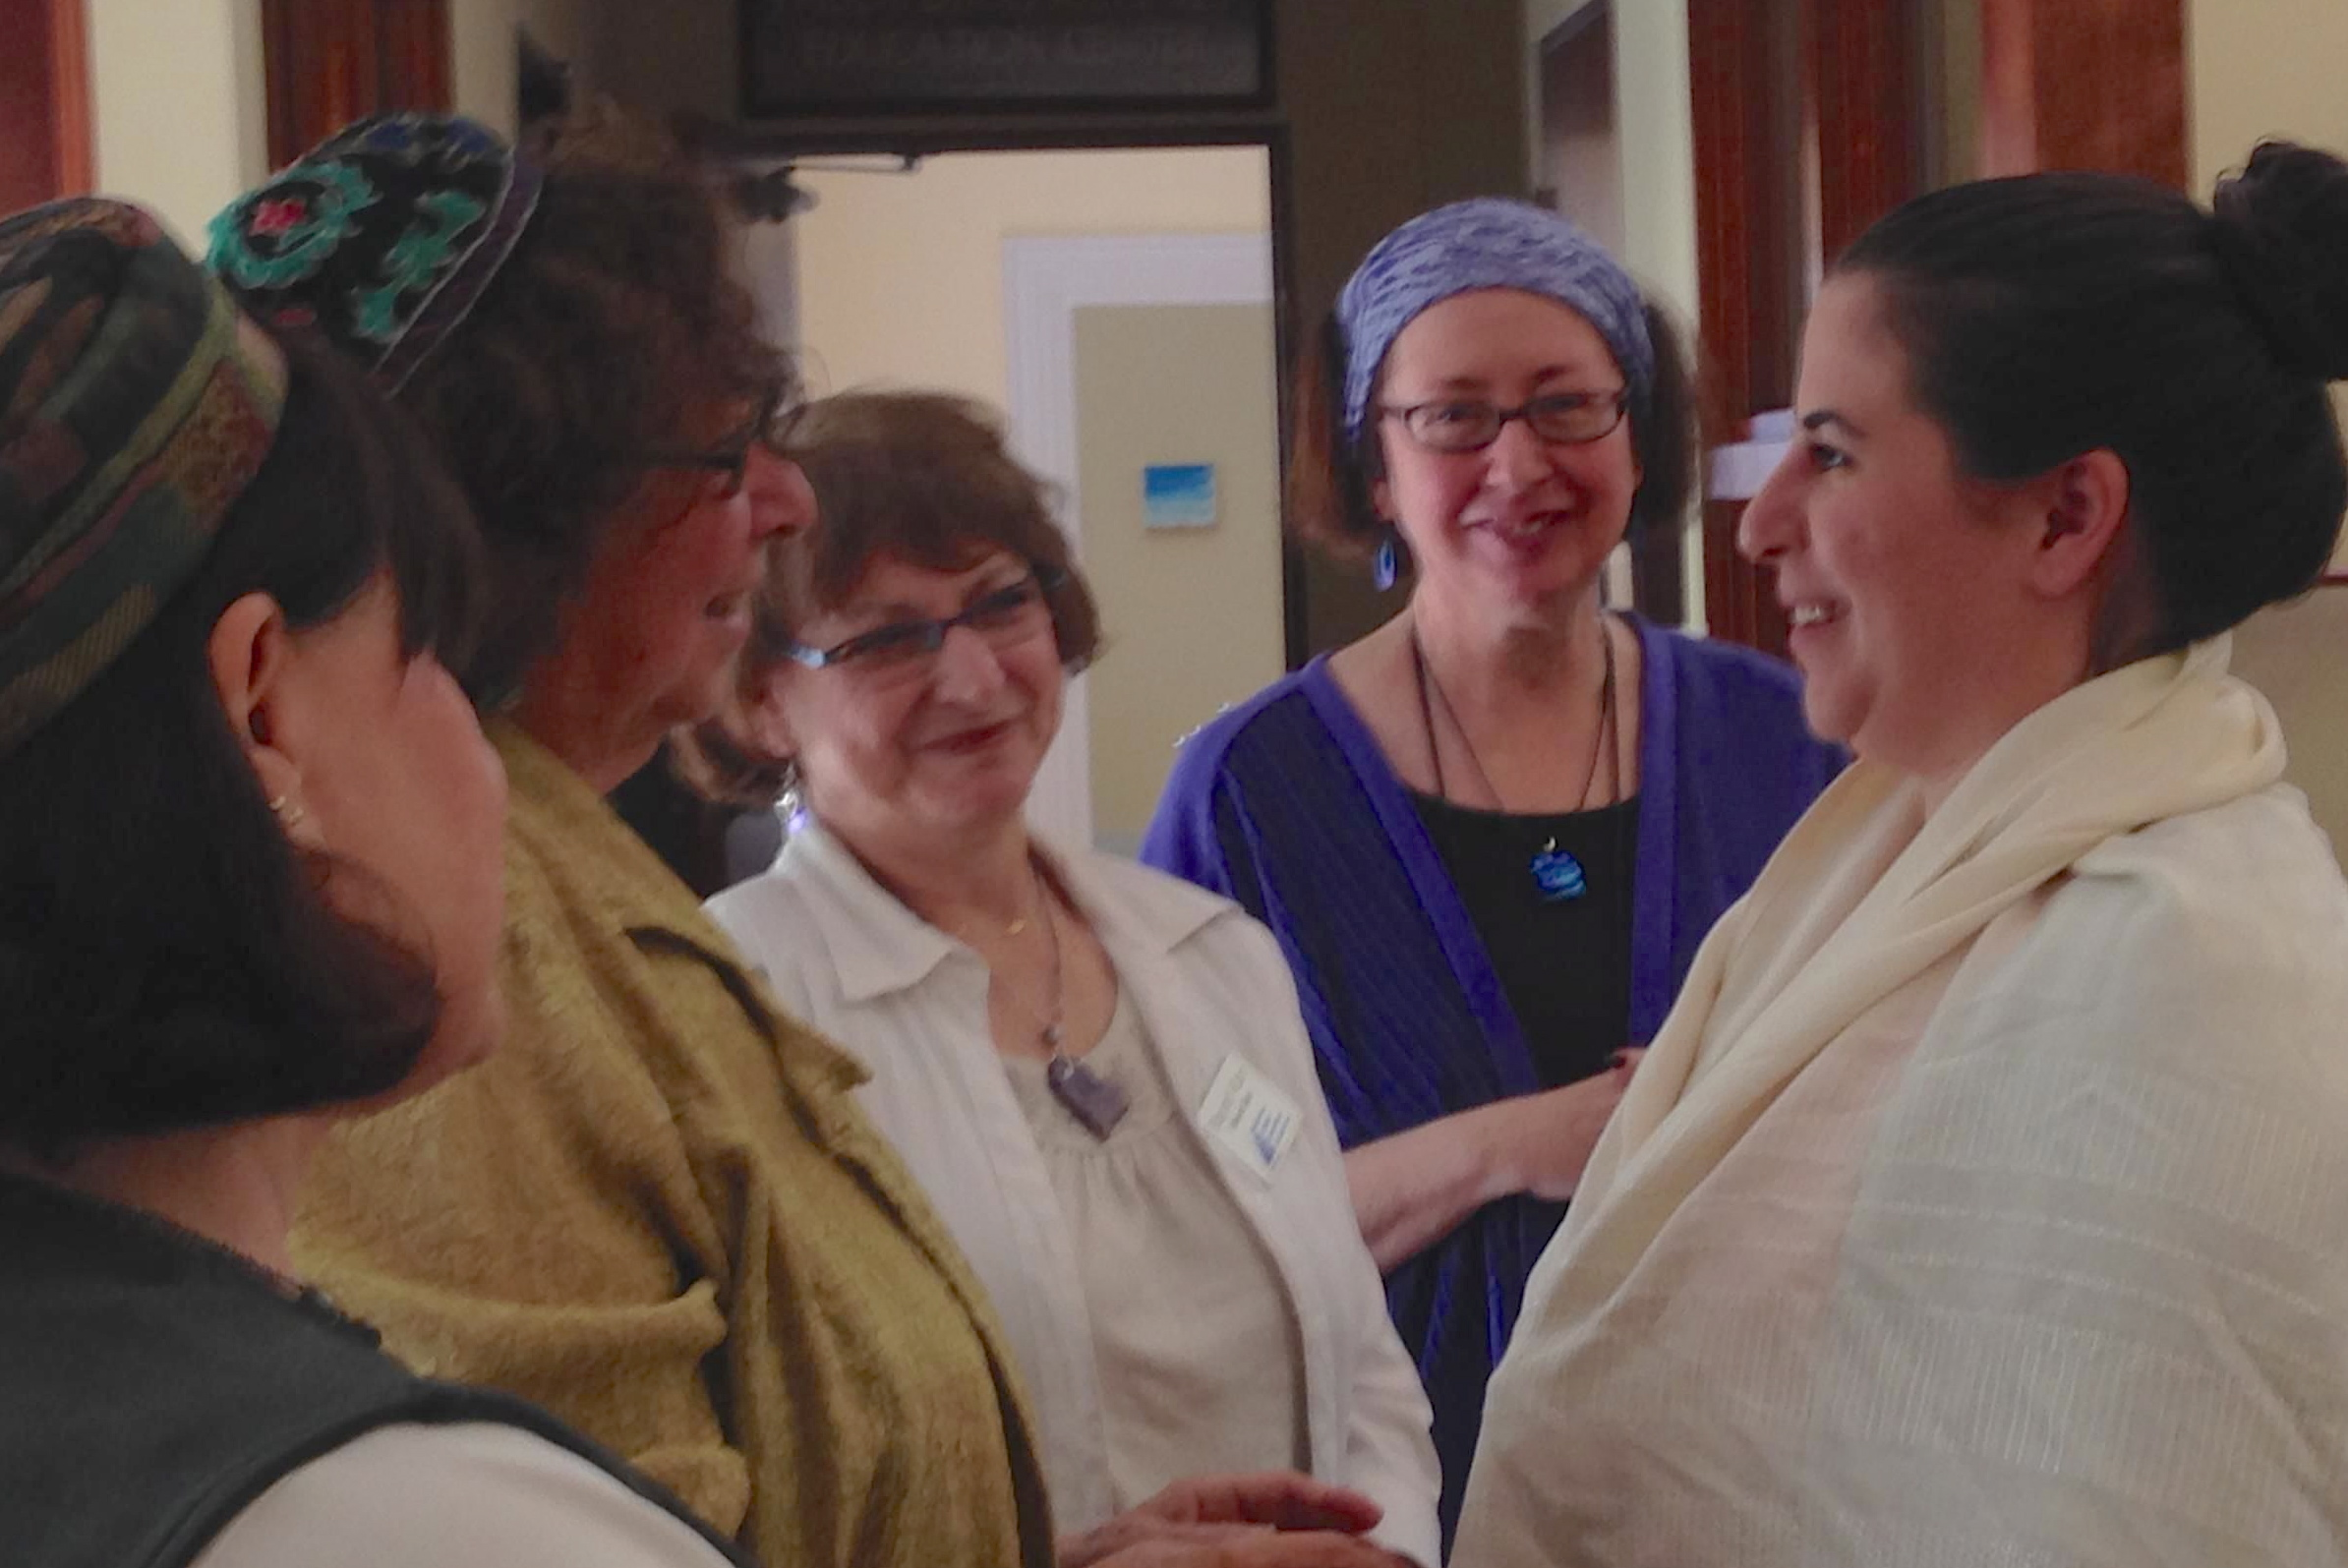 The Beit Din welcomes a new member into the Jewish community